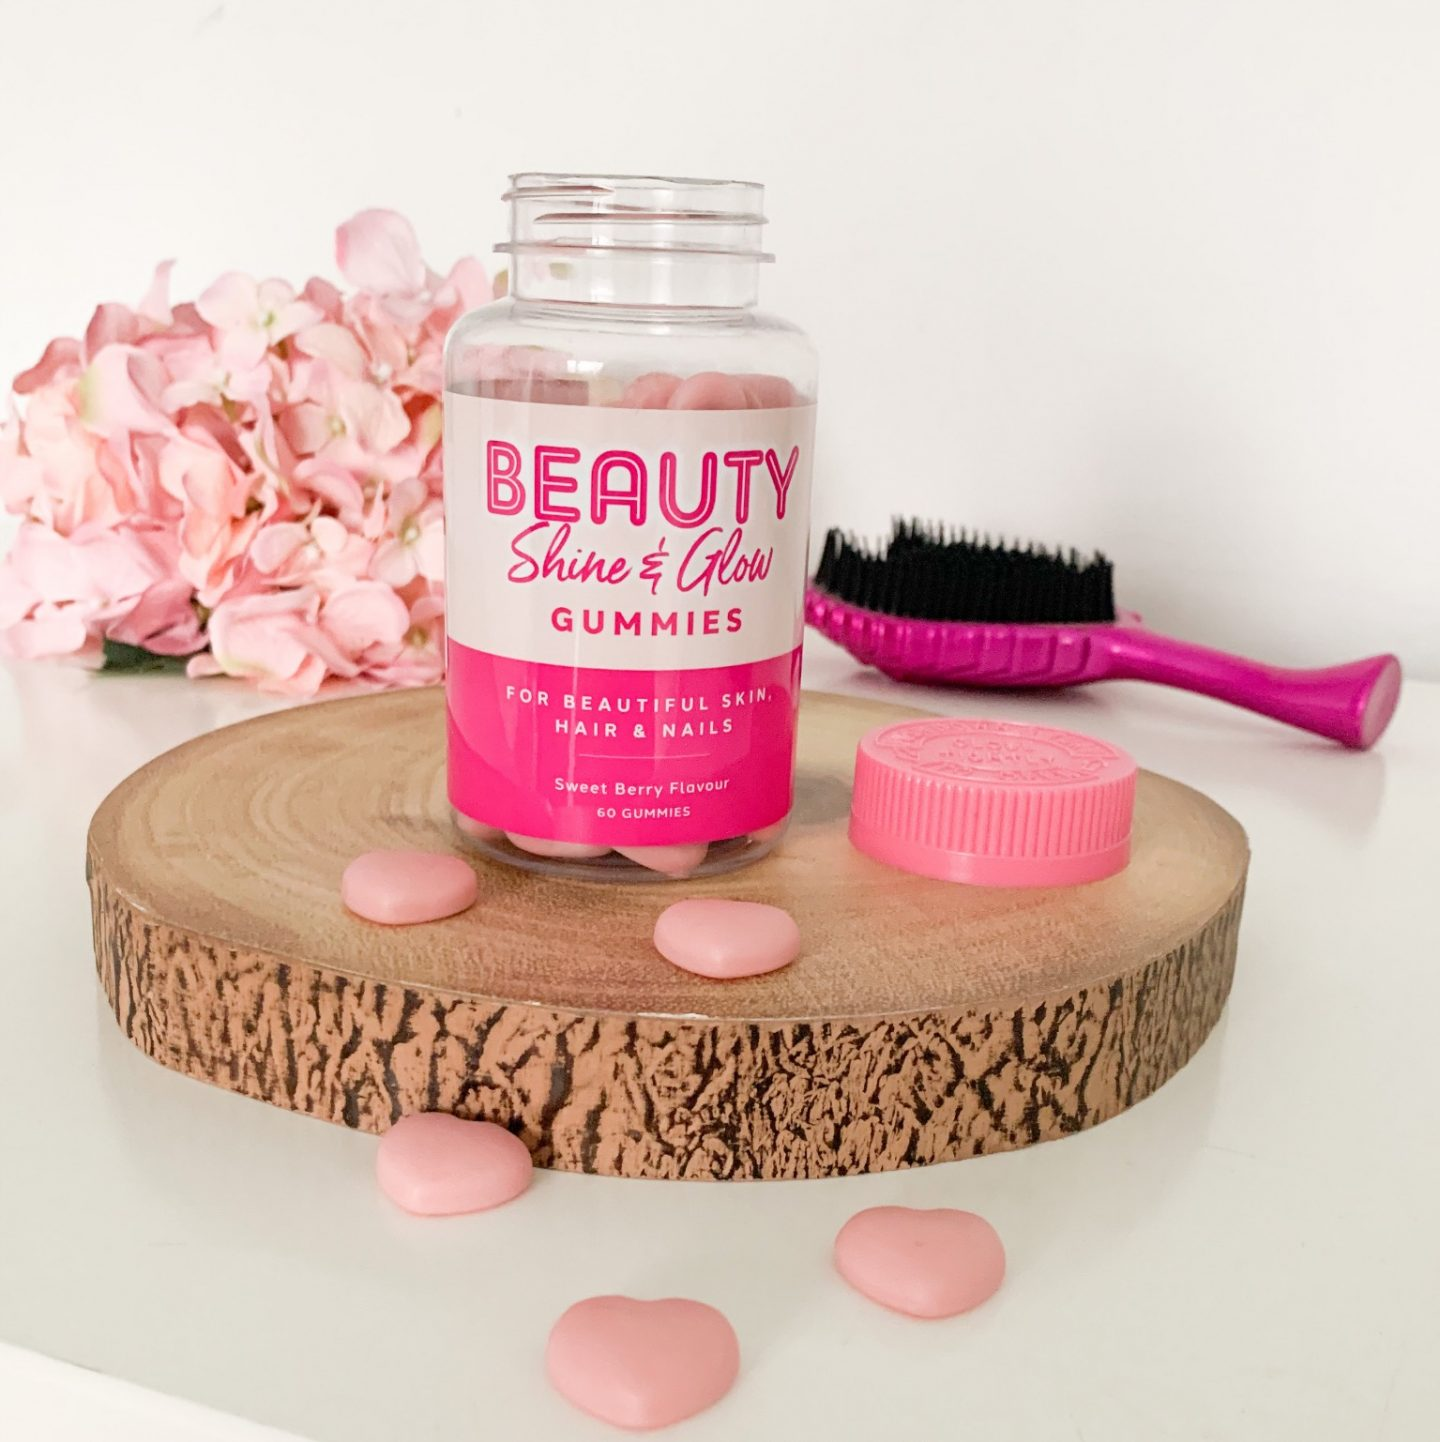 an open tub of Aldi beauty shine and glow supplements